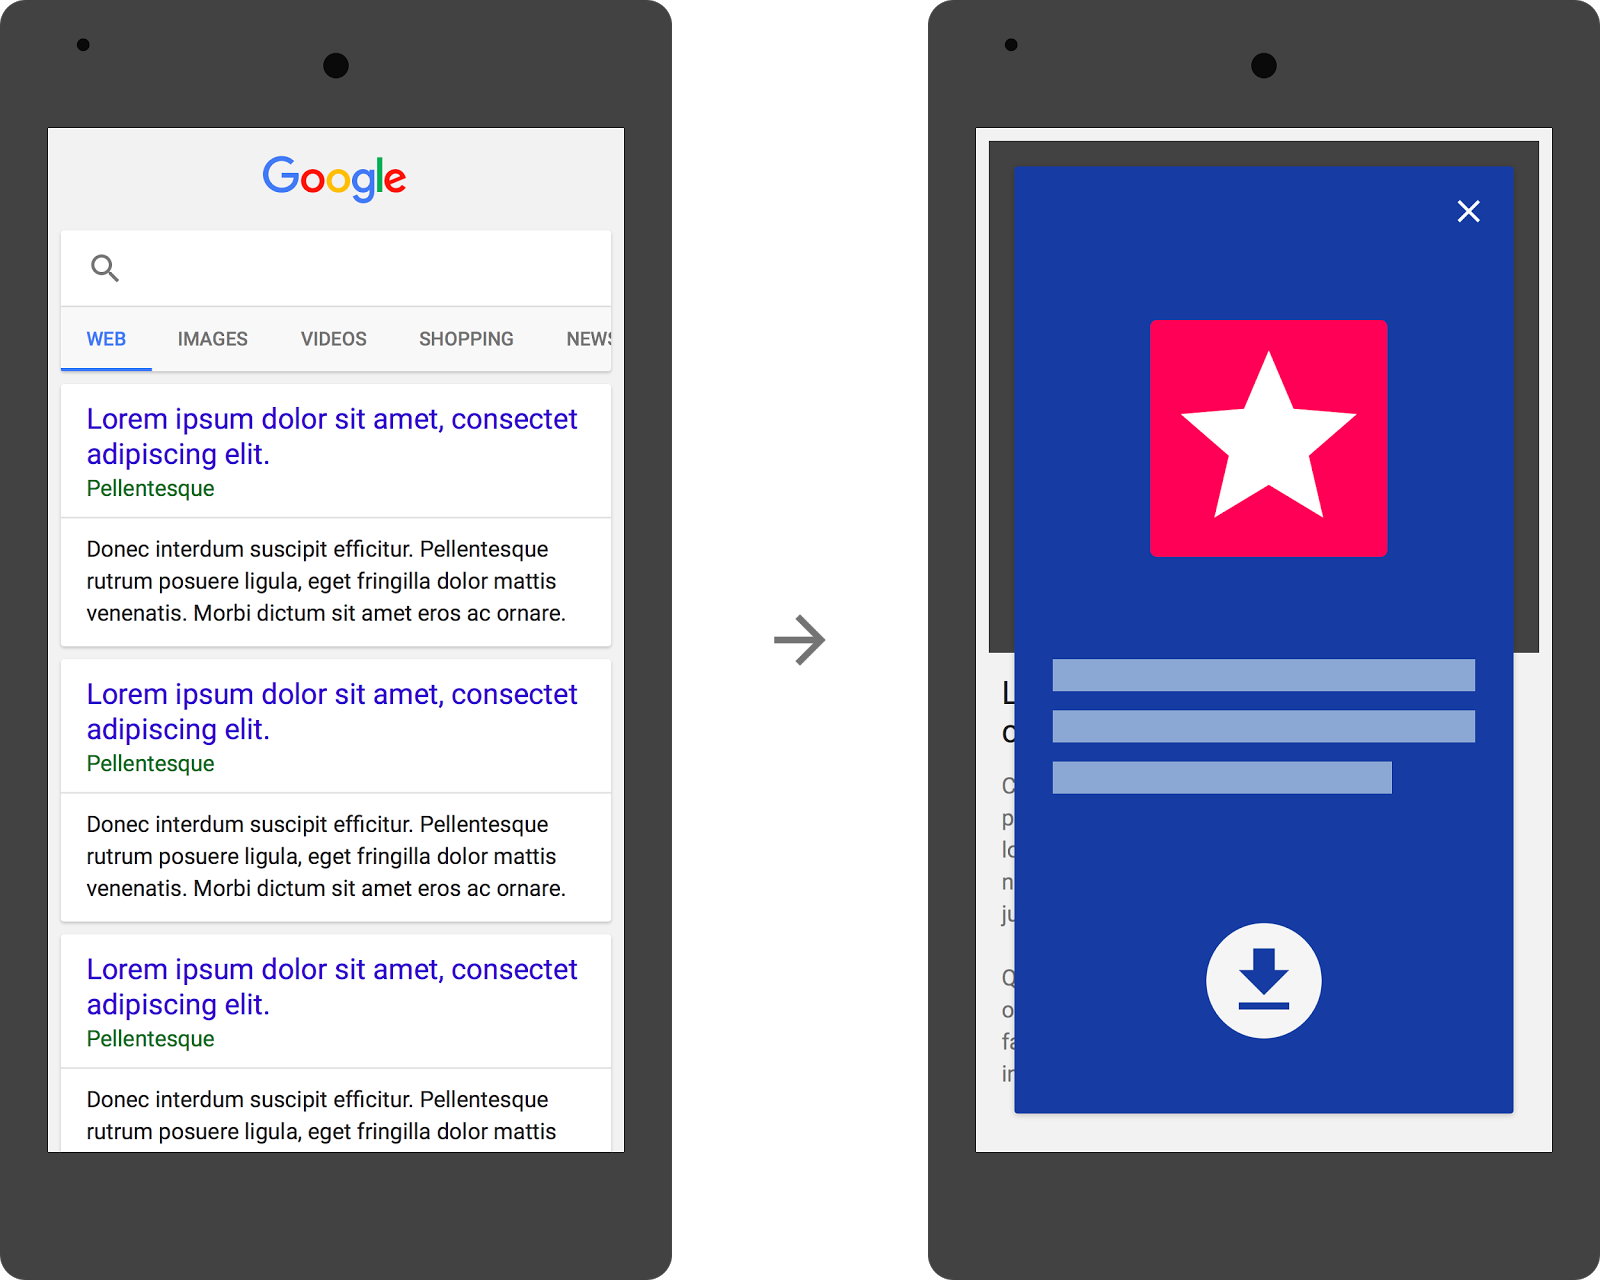 Google could be downranking sites that feature app install ads that block a significant portion of content from users.